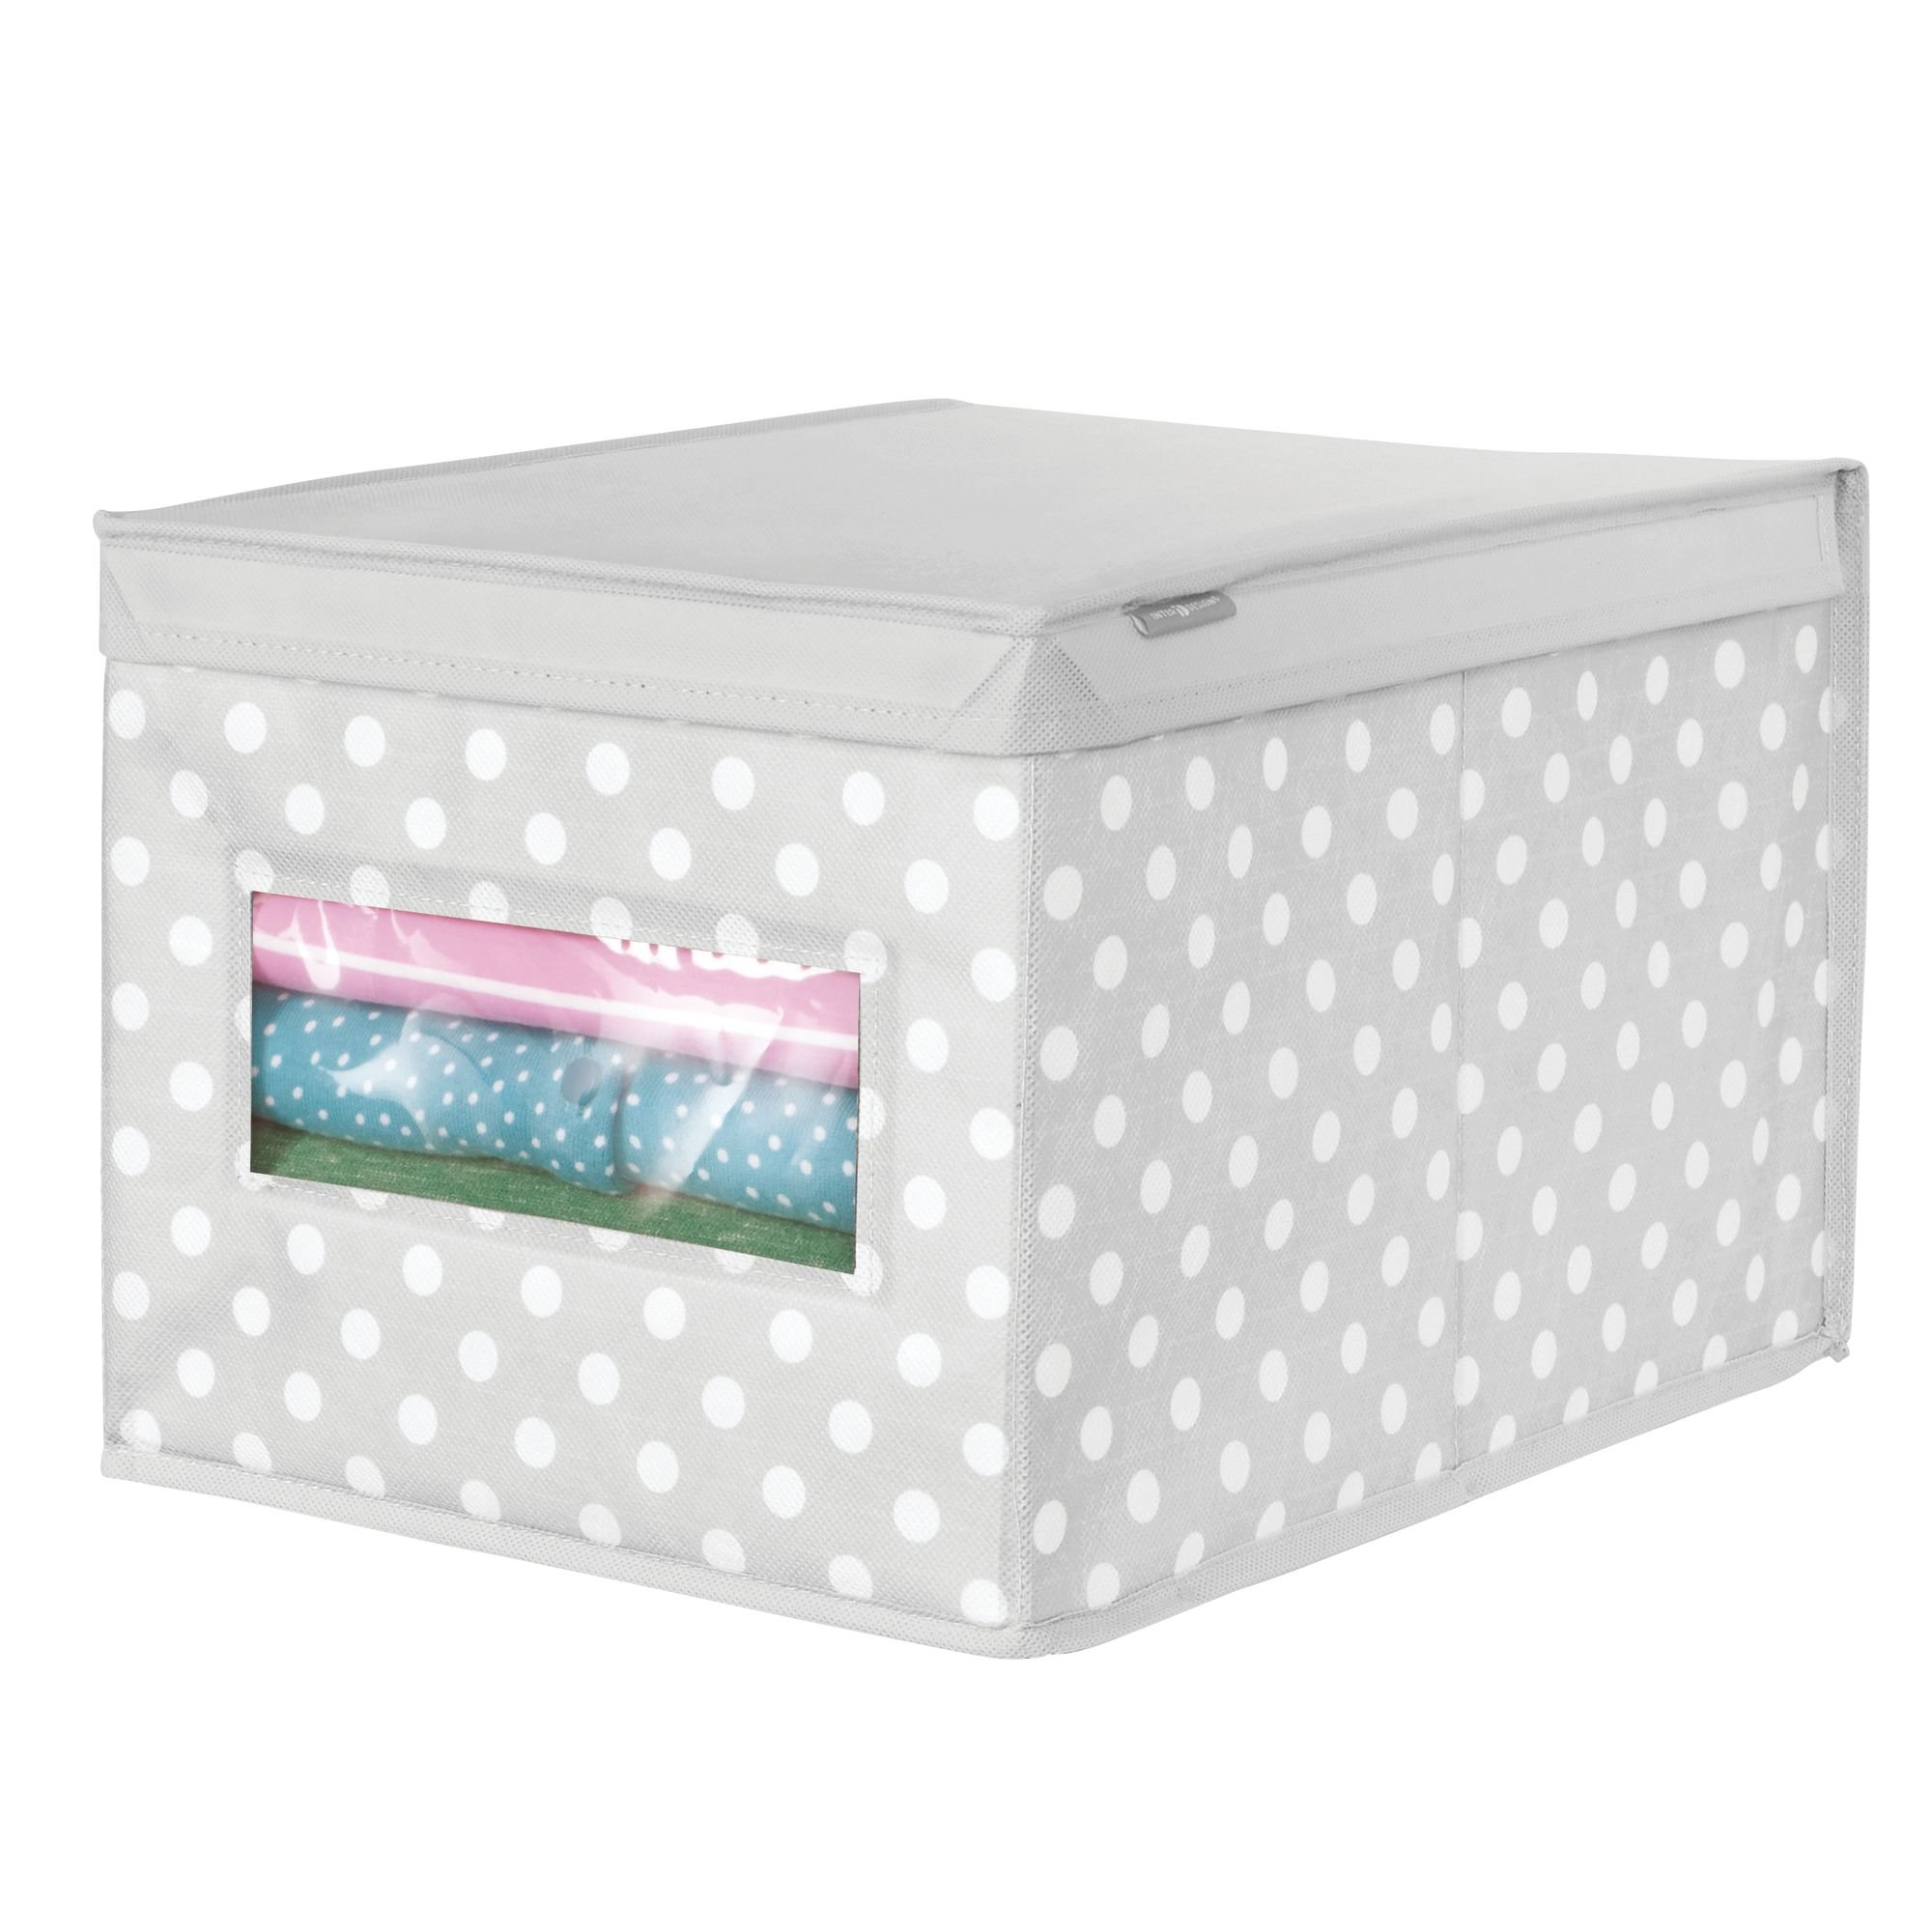 mDesign Soft Stackable Fabric Closet Storage Organizer Holder Box - Clear Window, Attached Hinged Lid, for Child/Kids Room, Nursery - Polka Dot Pattern - Large, Pack of 2, Light Gray with White Dots by mDesign (Image #6)